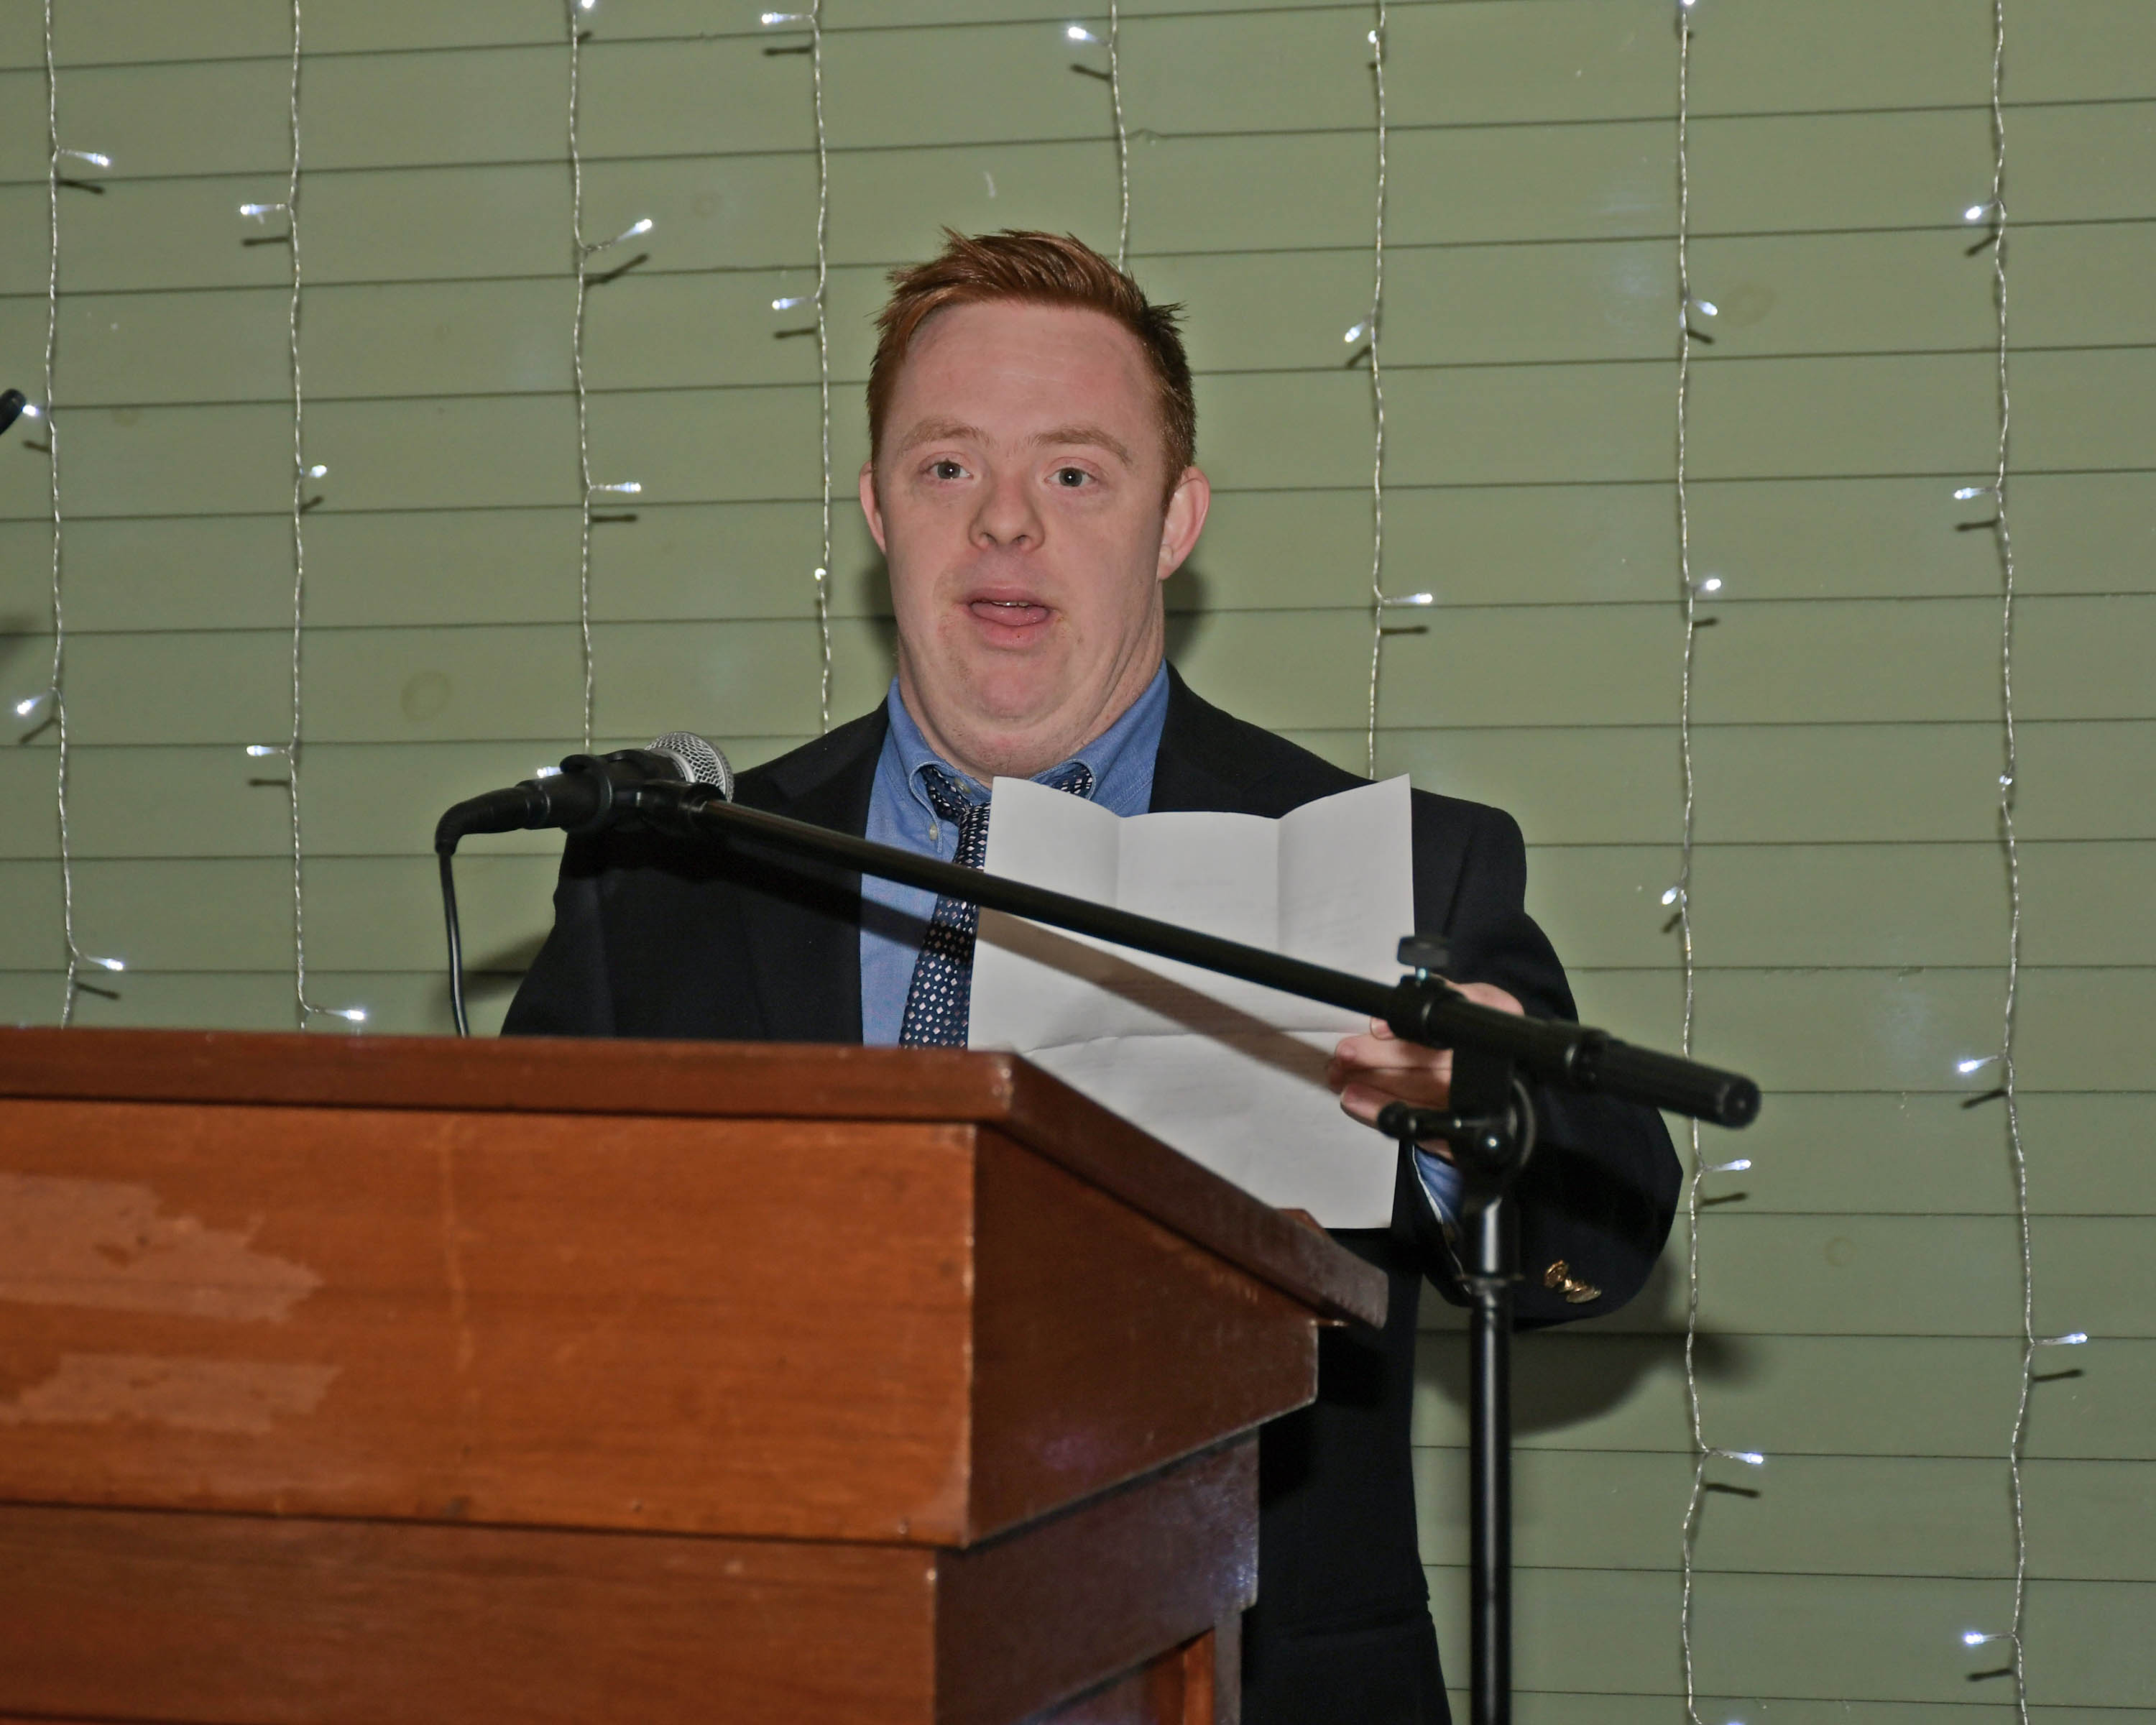 Vin Le Soir to benefit AIM Services, Inc. Connor, individual served, speaking